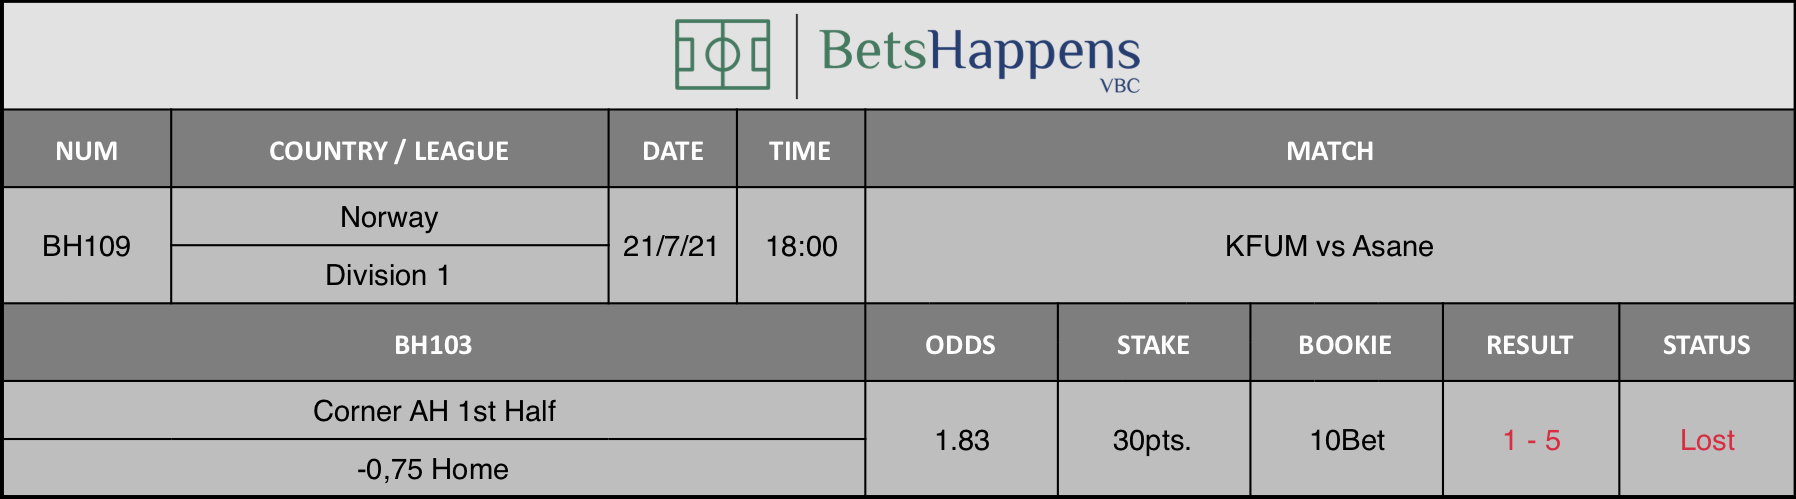 Results of our advice for the KFUM vs Asane match in which Corner AH 1st Half -0,75 Home is recommended.